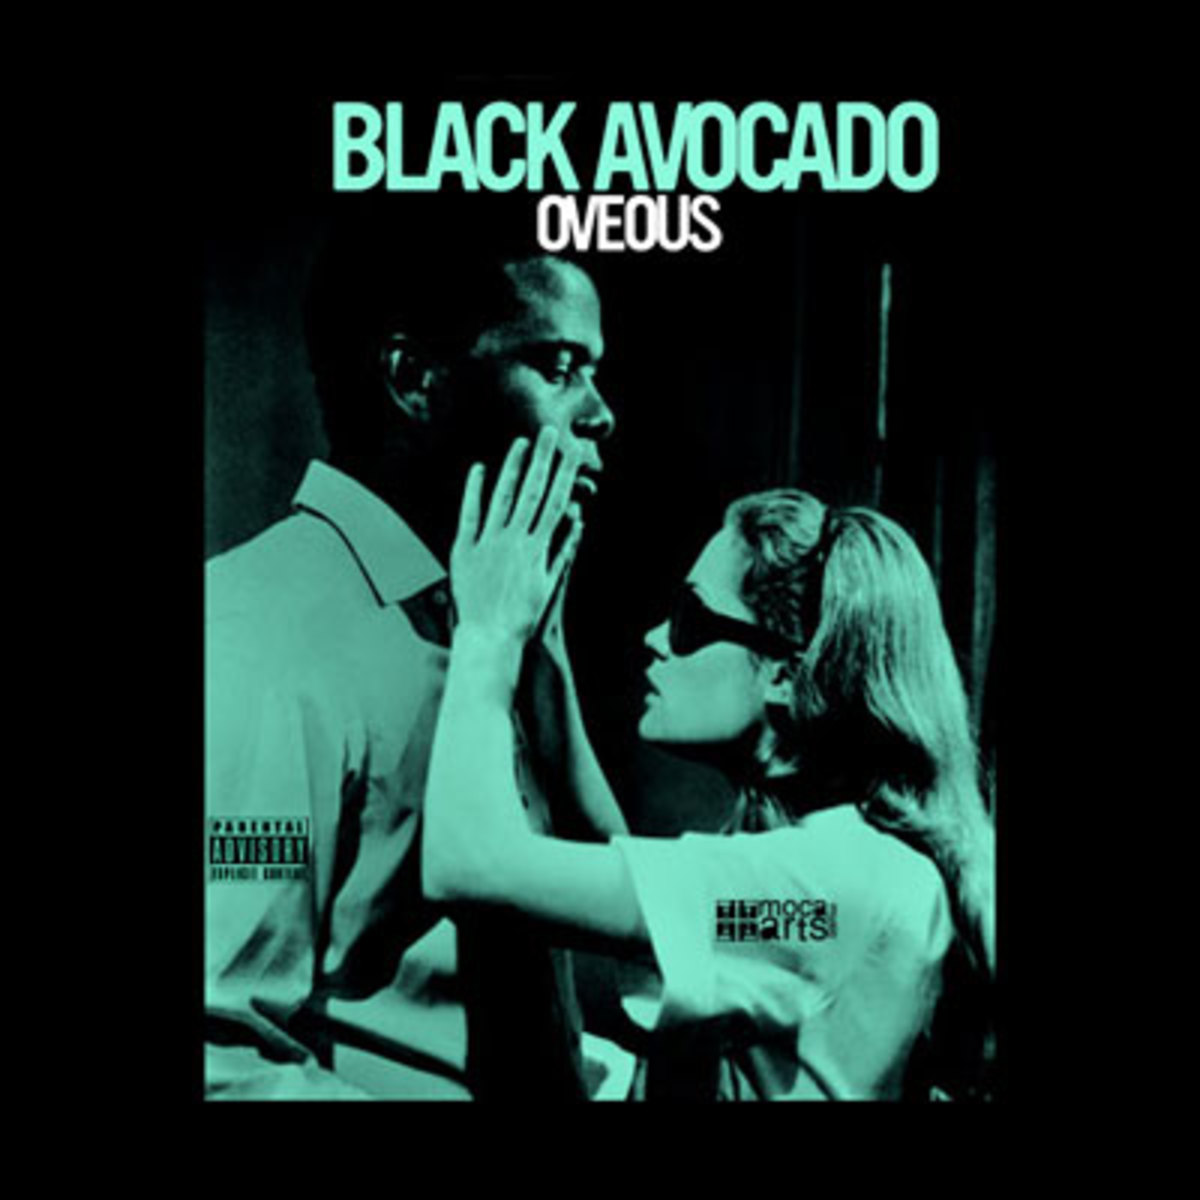 oveous-blackavocado.jpg